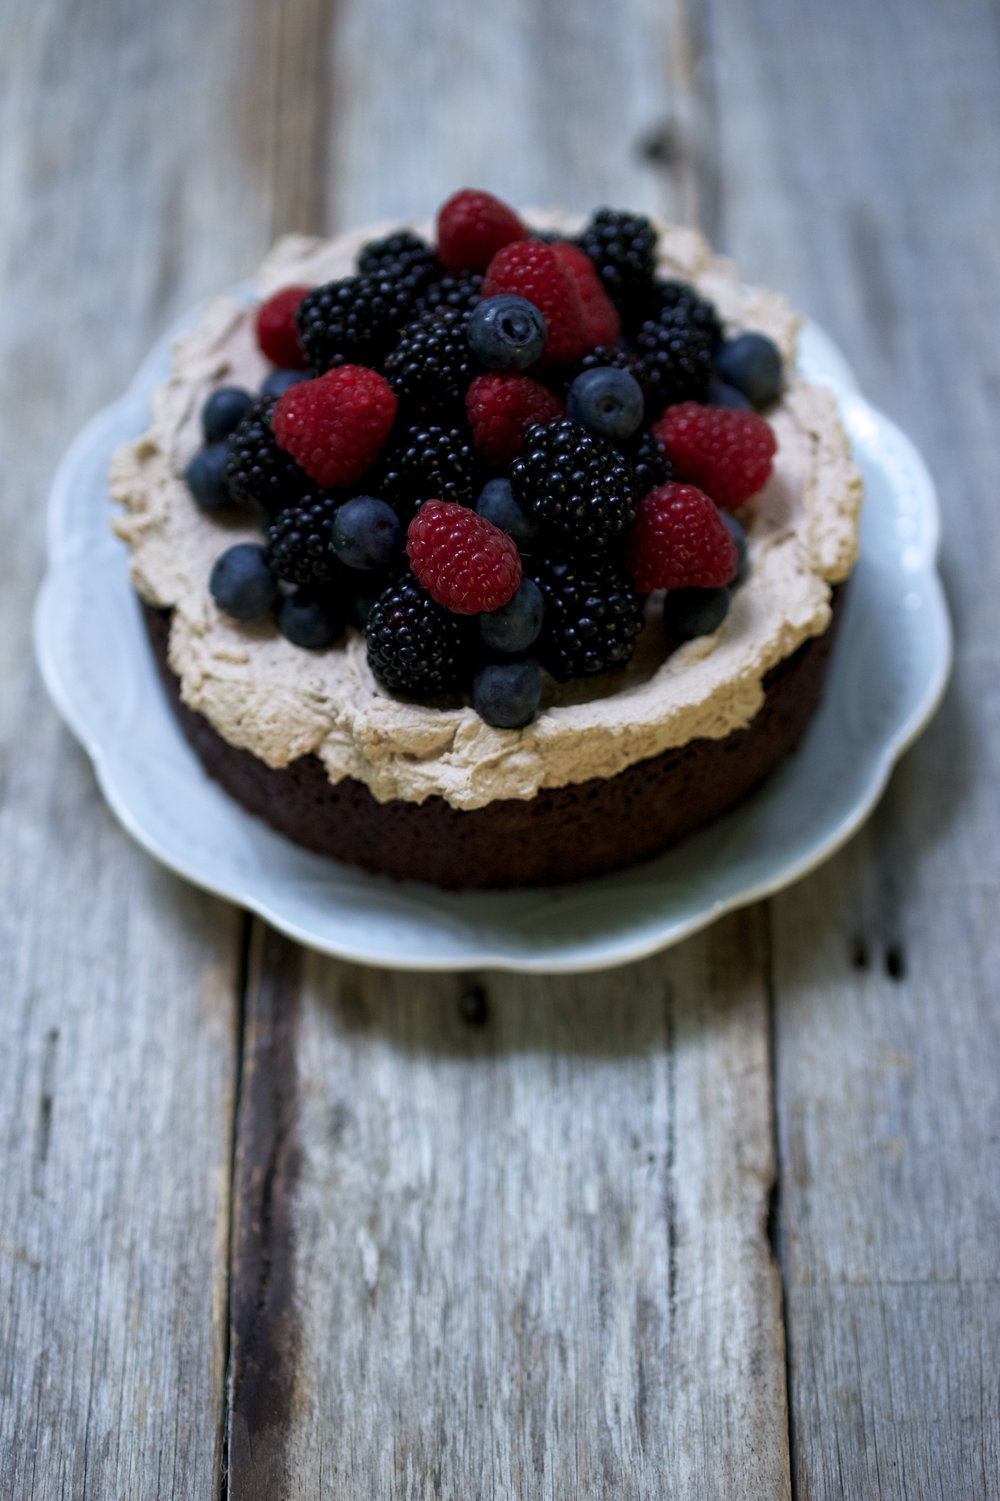 Mud Cake with Mocha Cream and Berries